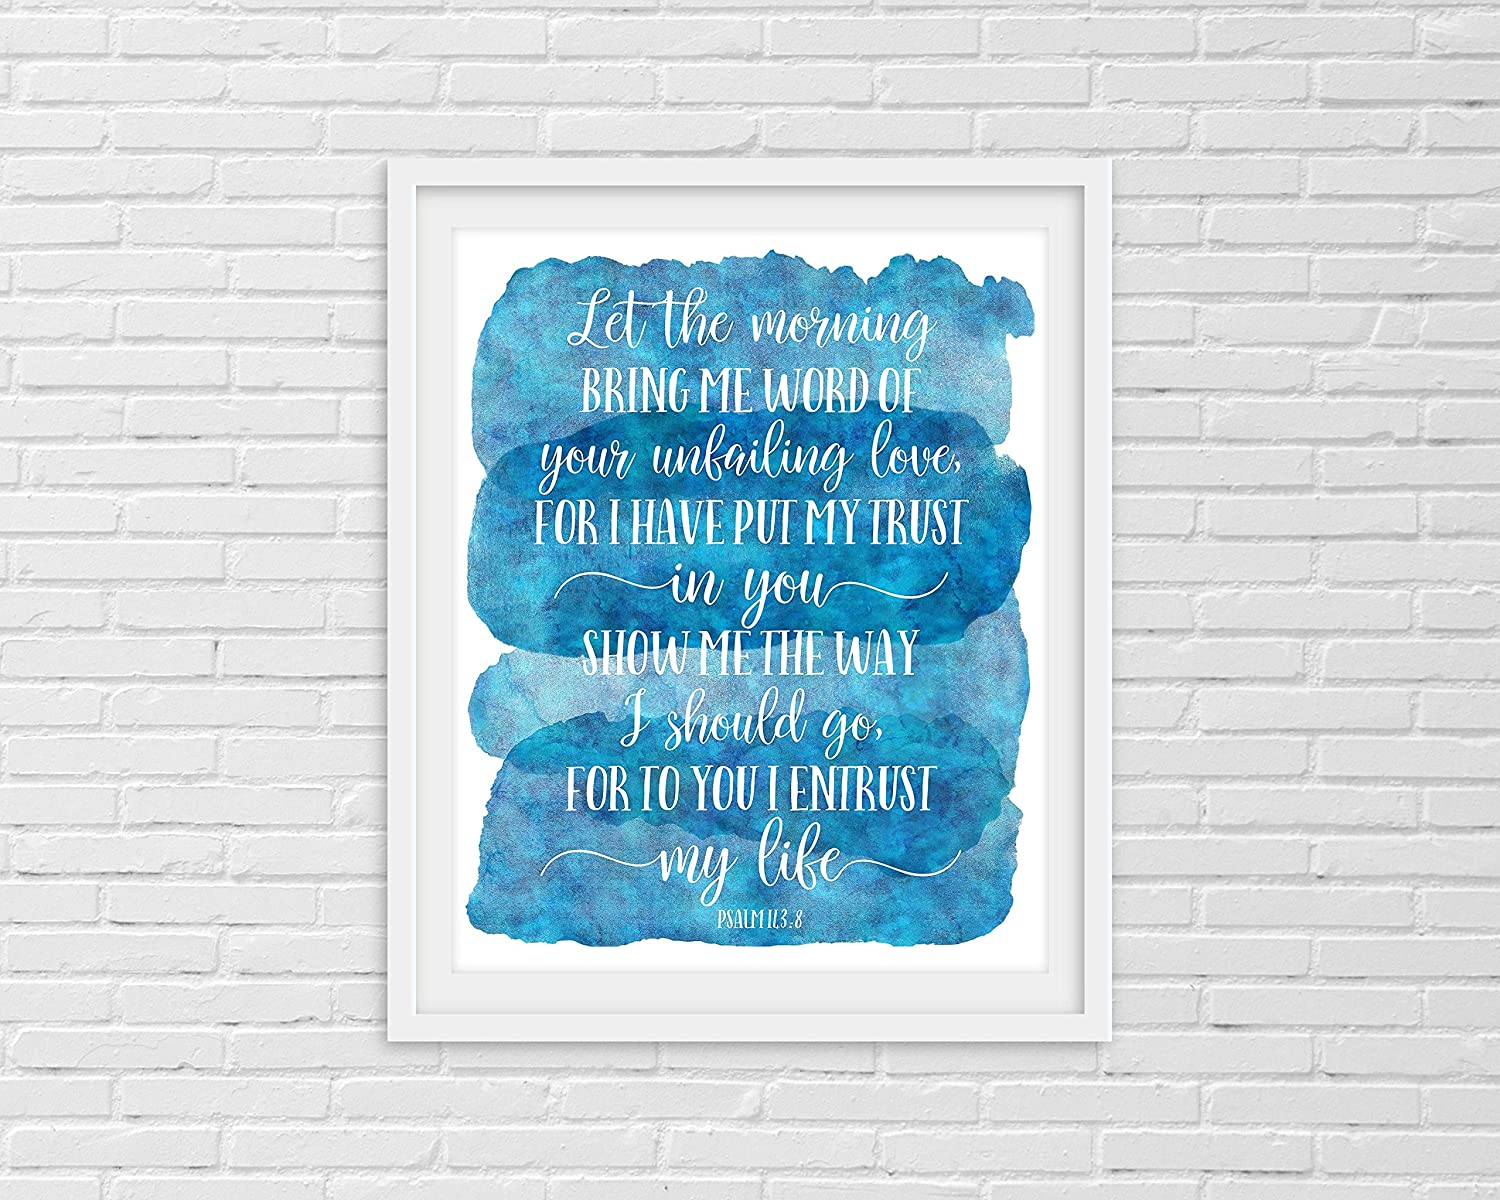 rfy9u7 Wood Plague-Let The Morning Bring Me Word, Psalm 143:8, Bible Verse, Christian Gifts, Scripture Wall Art, Nursery Decor, Dorm Room, Religious, Decoration for Living Room, Bedroom 12